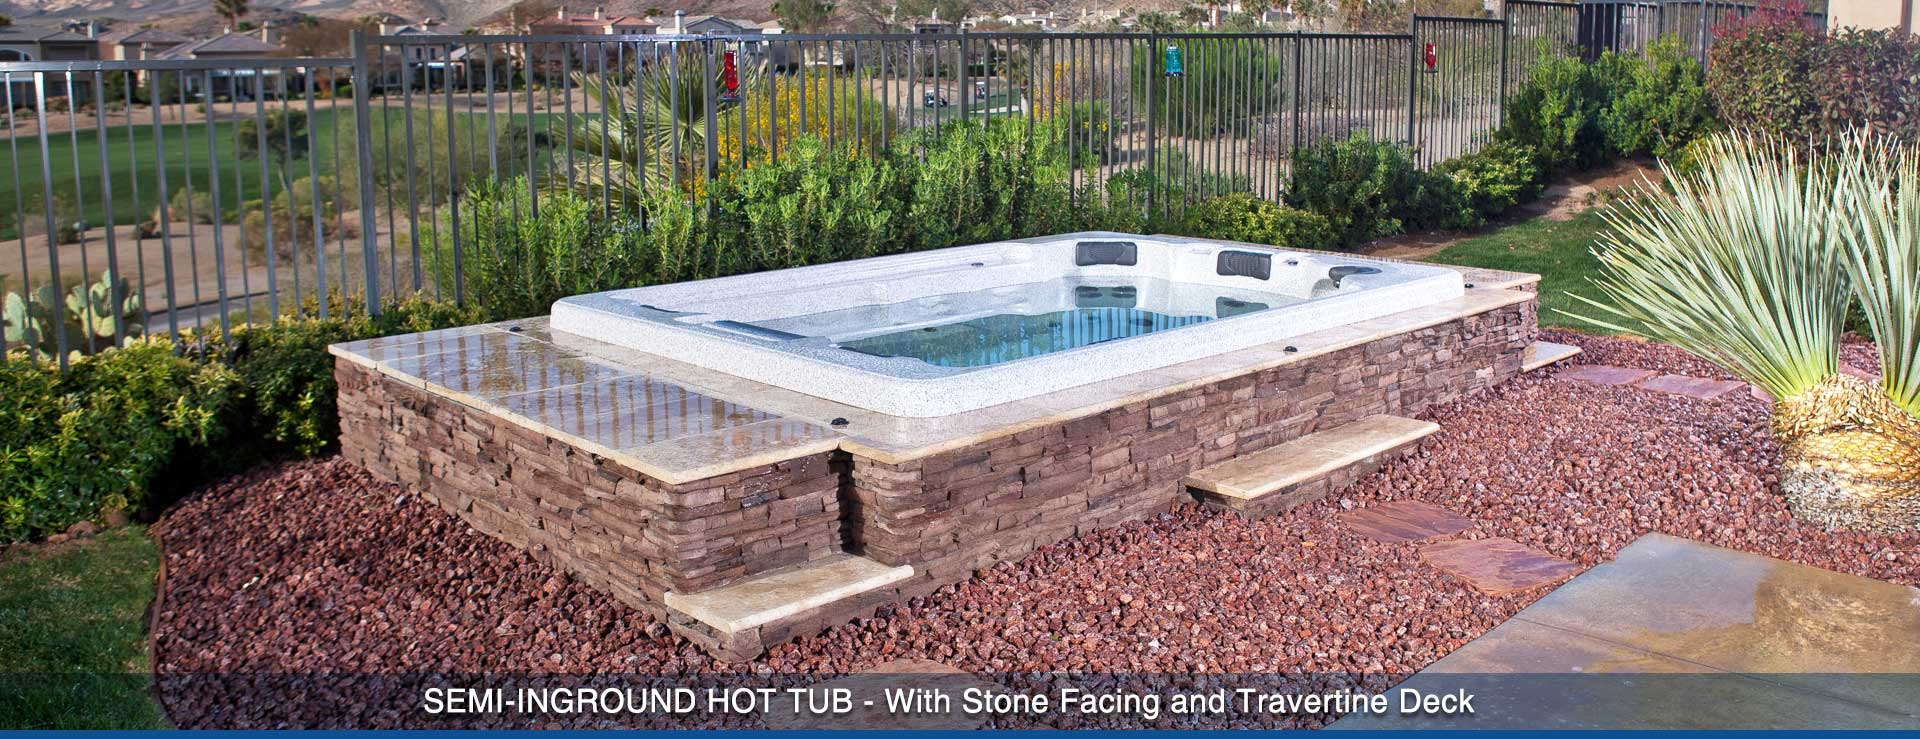 Creative Spa Designs   Premier Inground Spa, Portable Hot Tubs, Spa And  Swim Spa Store In Las Vegas